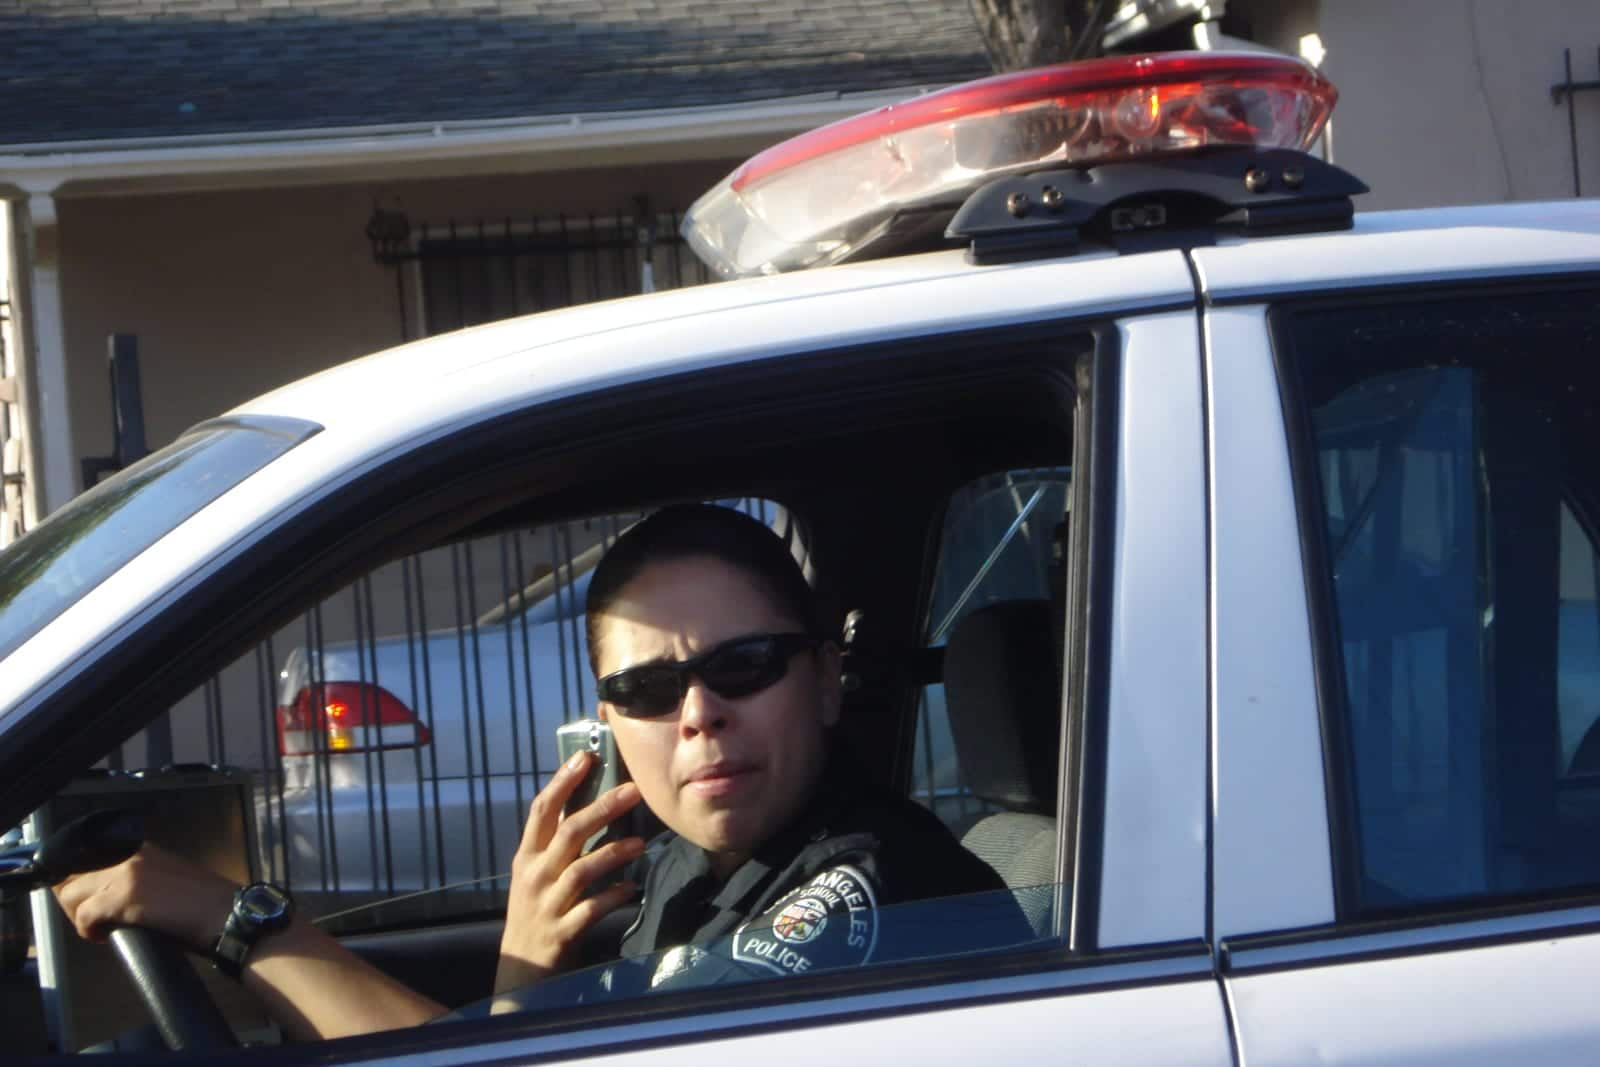 Distracted Driving Talking While Driving Law Police Car